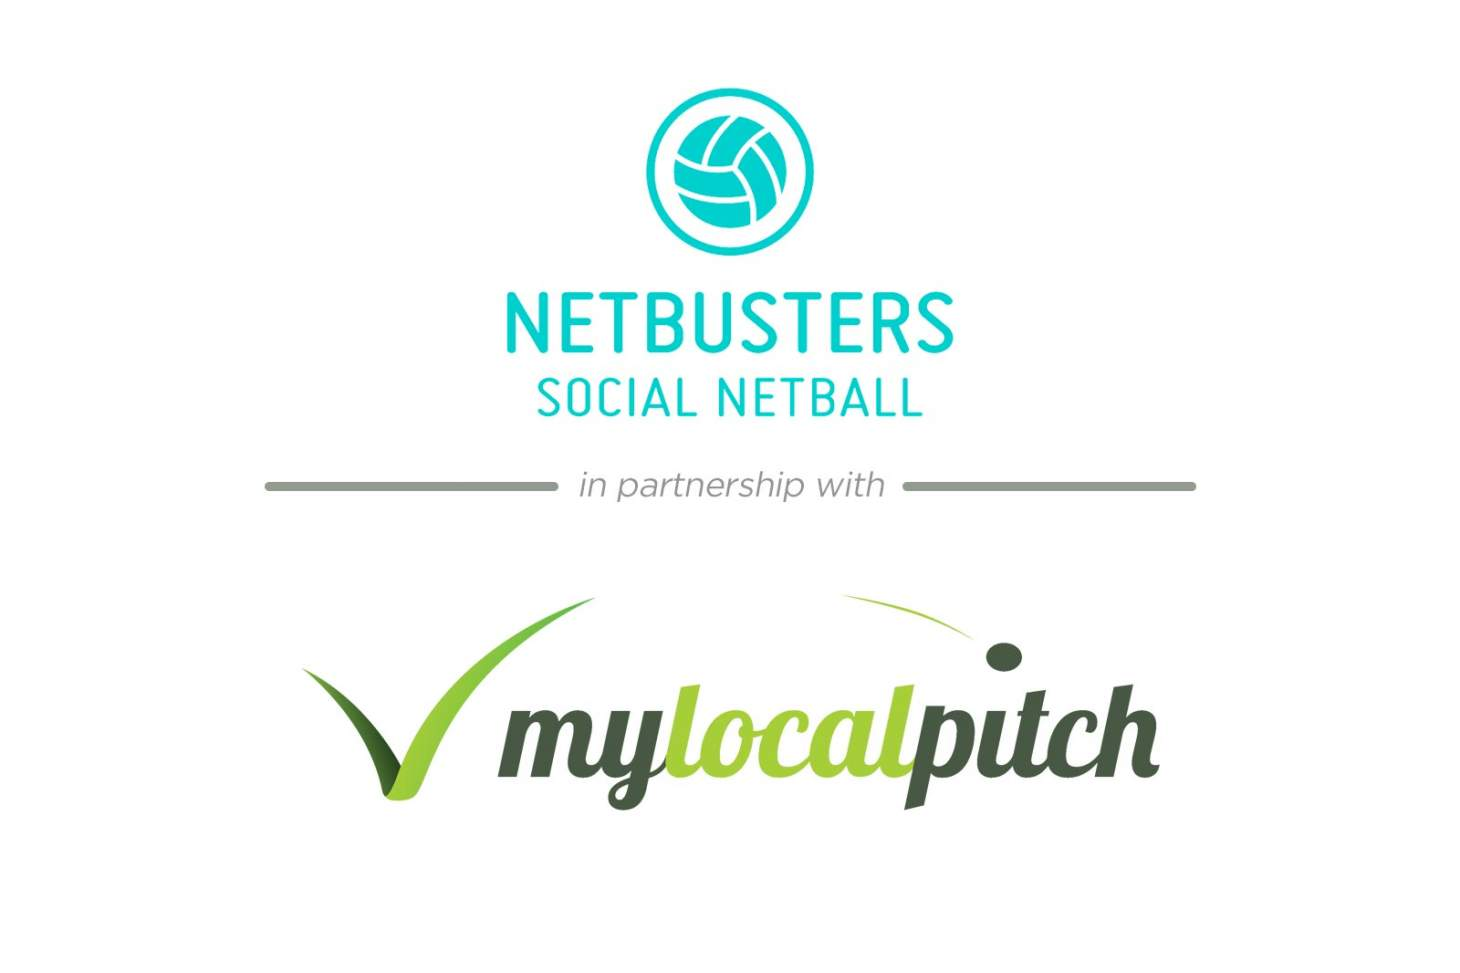 Clapham Common - Netbusters Outdoor | Hard (macadam) netball court